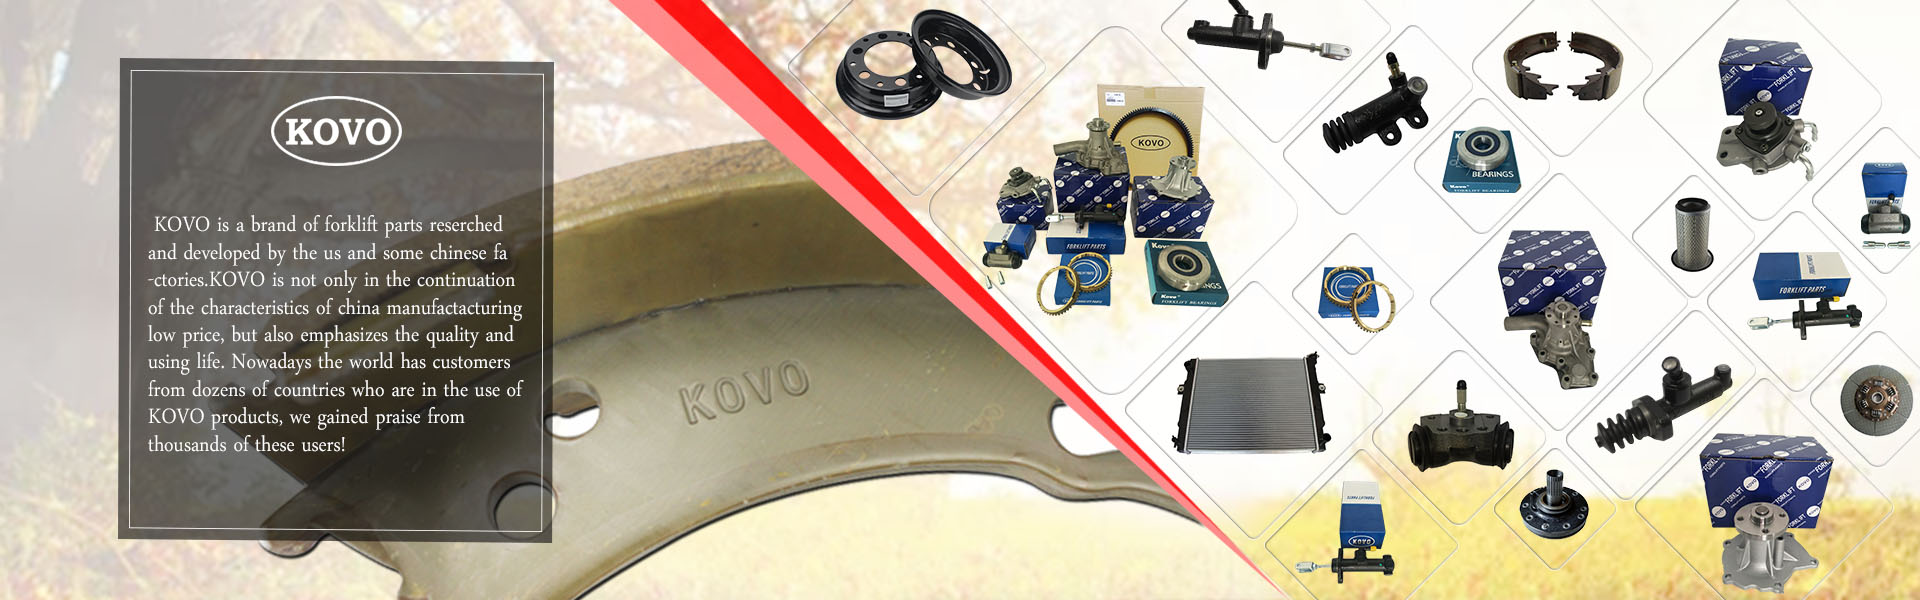 kovo forklift parts